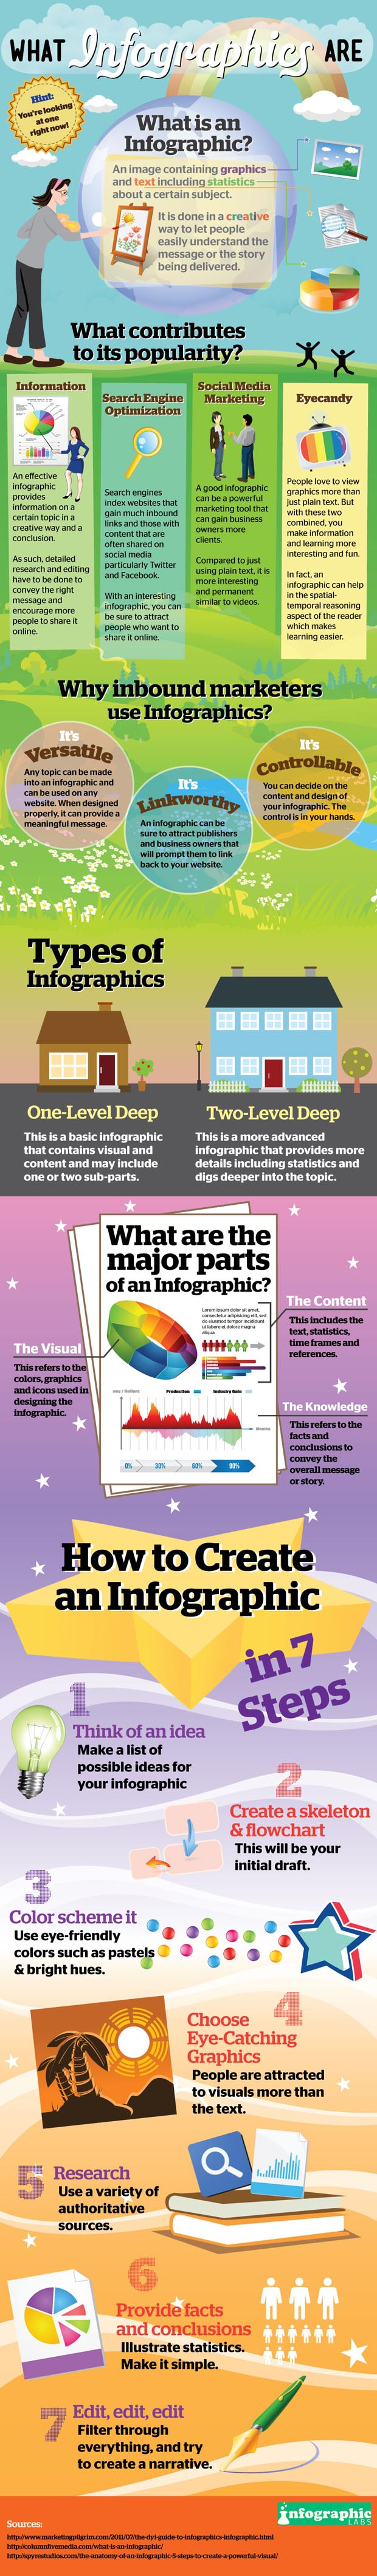 best-infographic-about-infographics